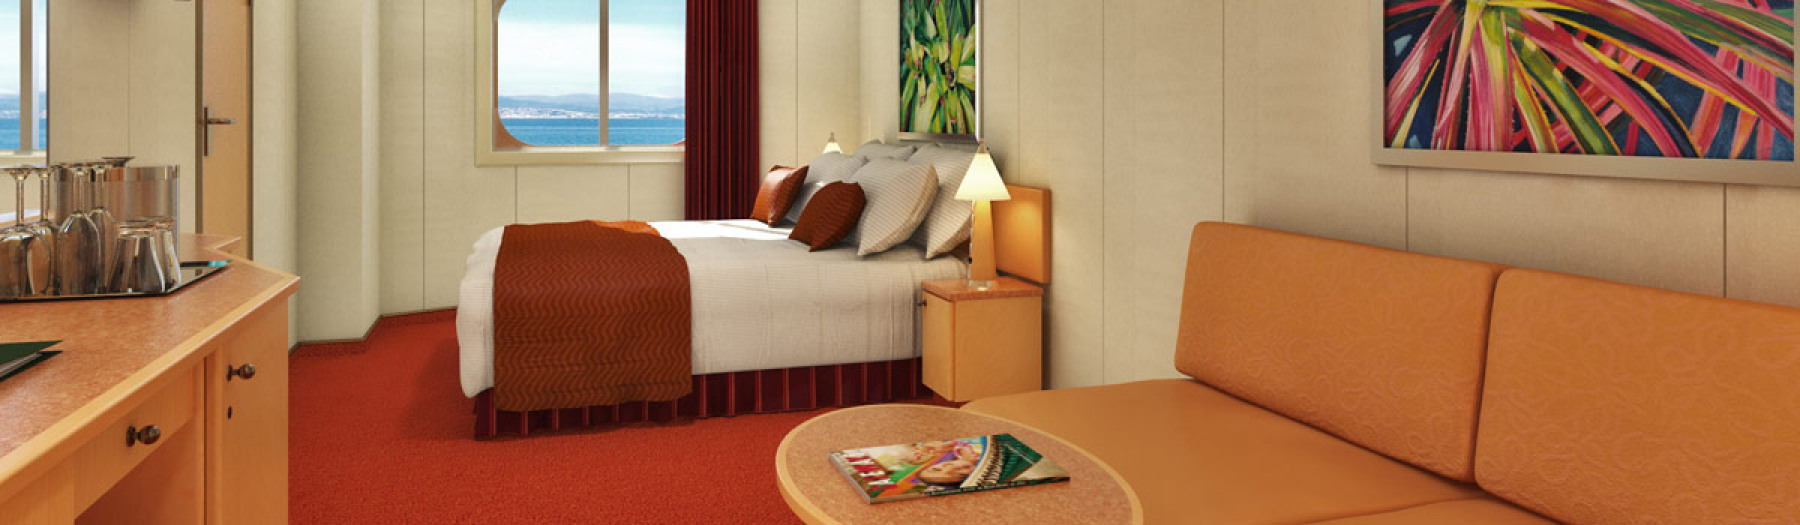 Carnival Cruise Lines Carnival Dream AccommodationOcean View.jpg